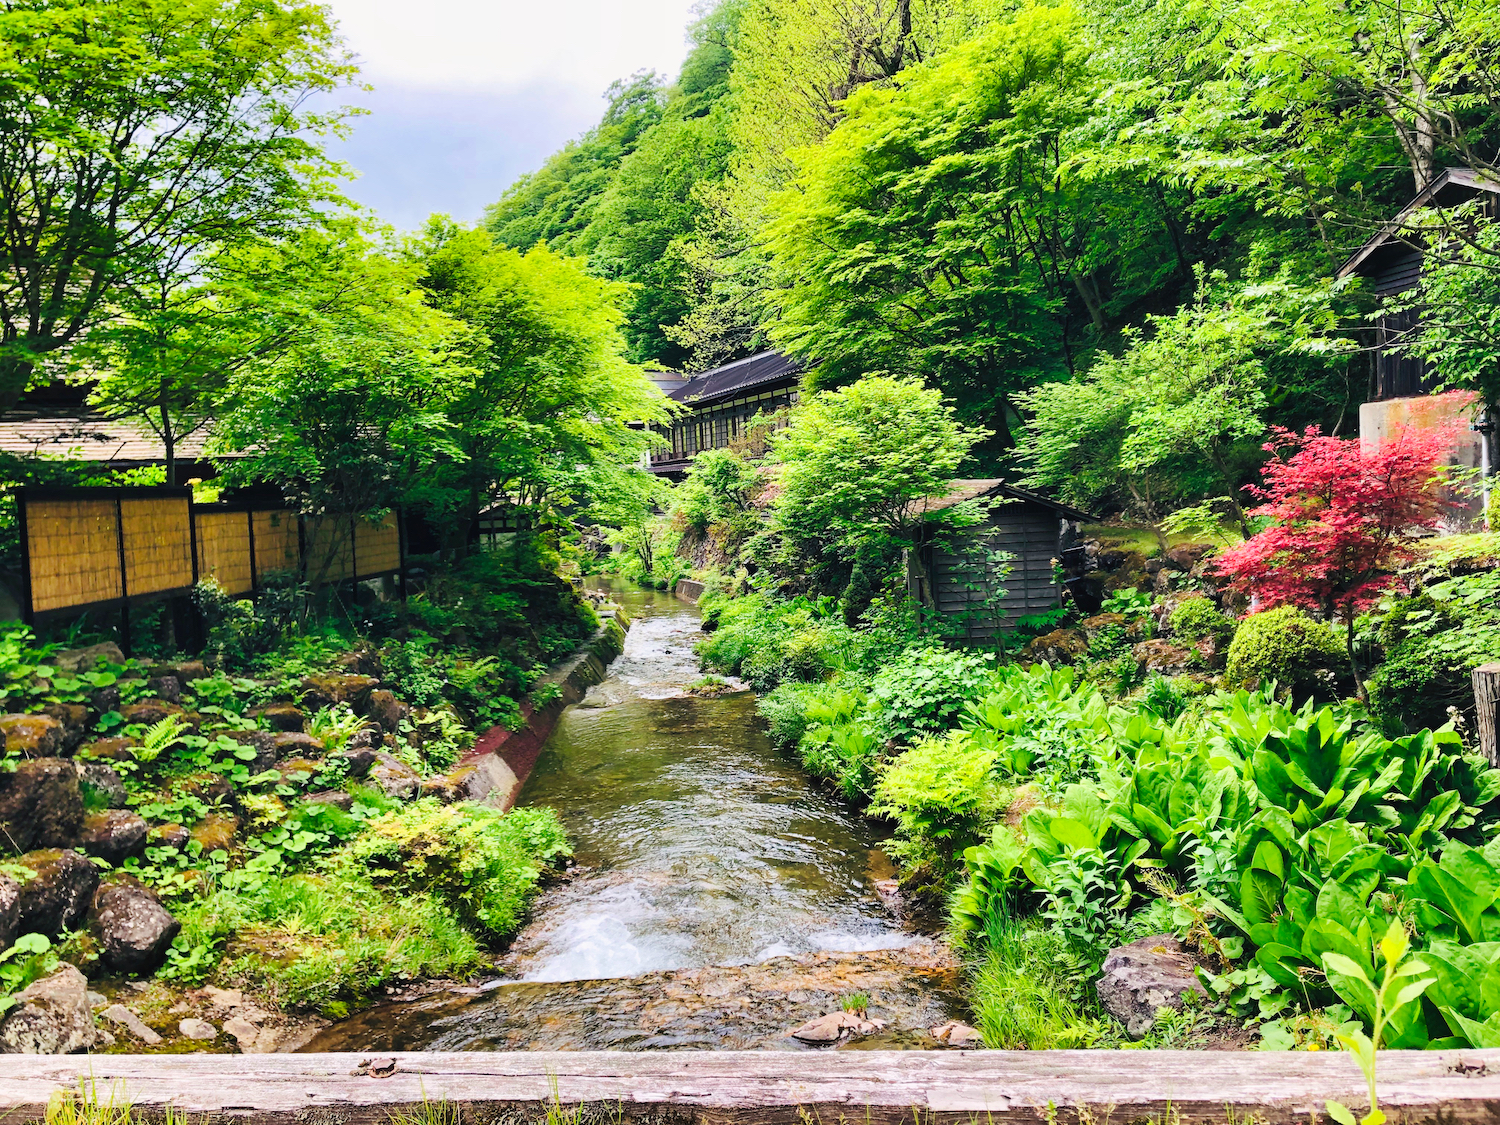 The grounds at Hoshi Onsen, Japan (Eat Me. Drink Me.)